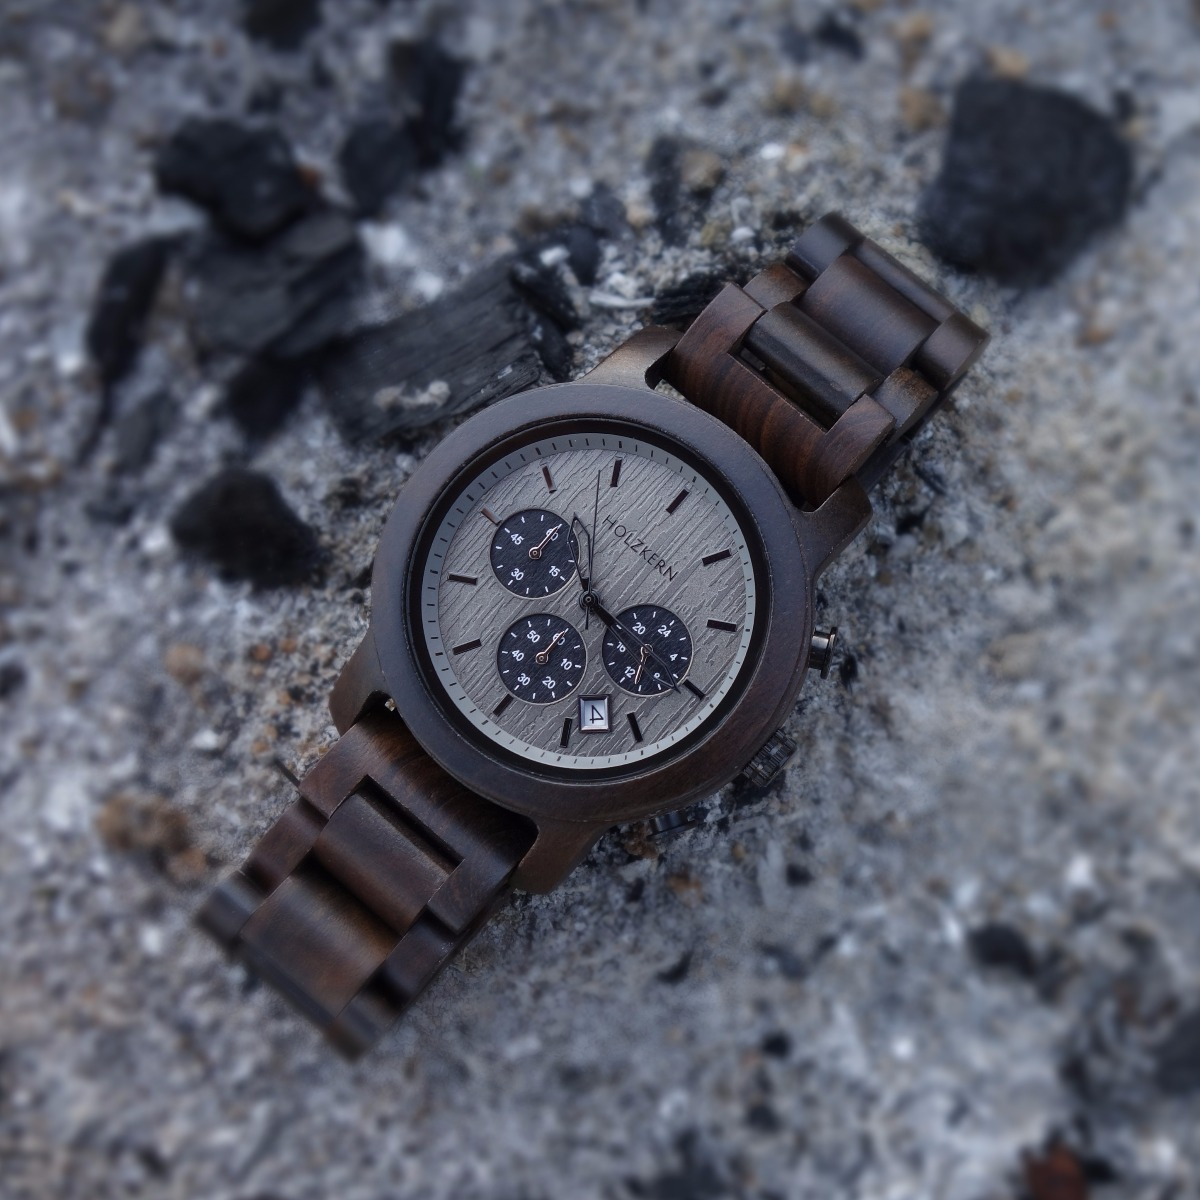 Holzkern's wood watch Northwall made of leadwood lying on rocks